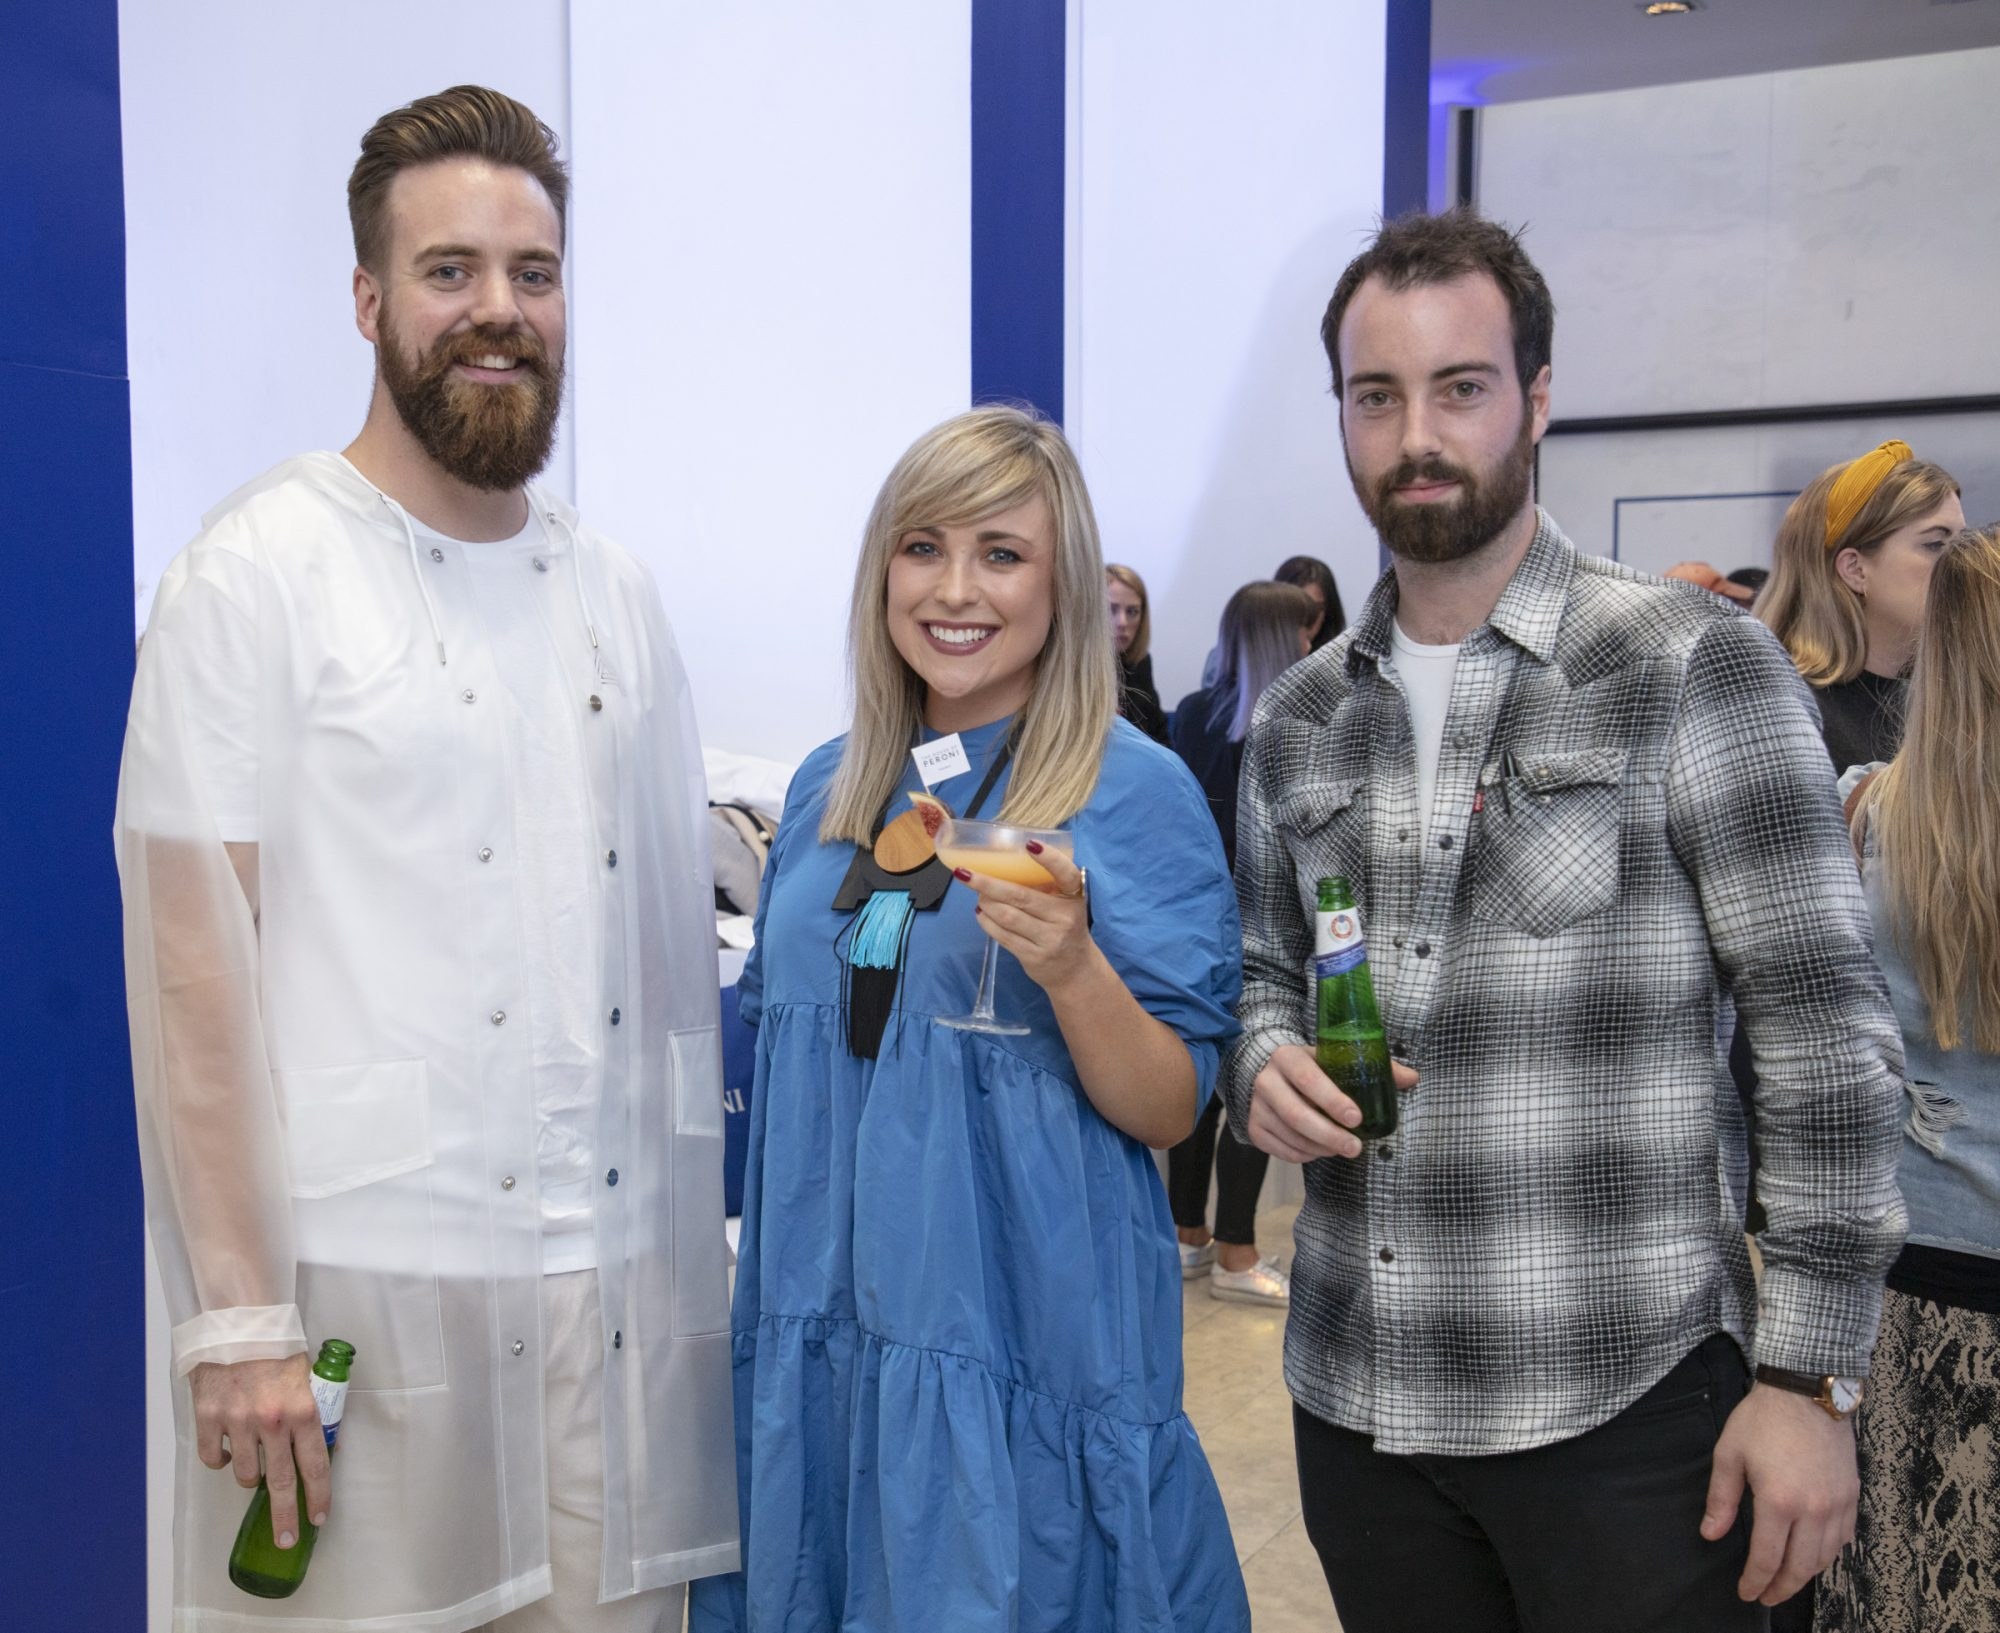 Kev Freeney, Roisin Lafferty & Killian Crowley pictured at the launch of The House of Peroni, which is open at the RHA in Dublin until Sunday, 1st September 2019. This year's residency sees the RHA transformed into a stylish Peroni inspired experience, filled with food, drink and design. www.thehouseofperoni.com Photo: Anthony Woods.